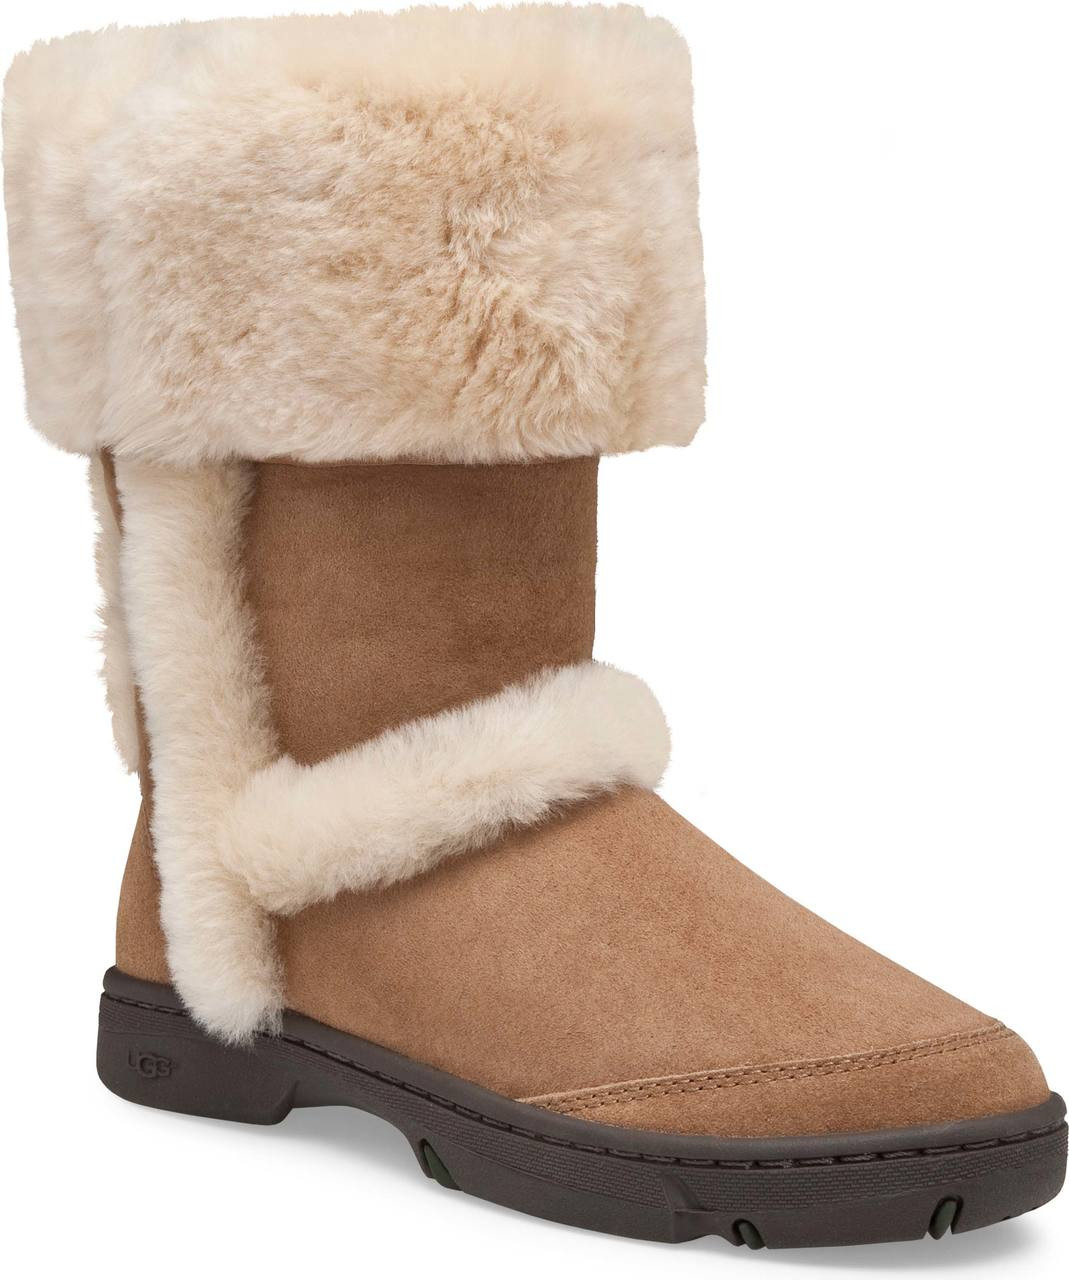 ... UGG Women's Sunburst Tall. Chestnut · Chestnut · Grey/Black